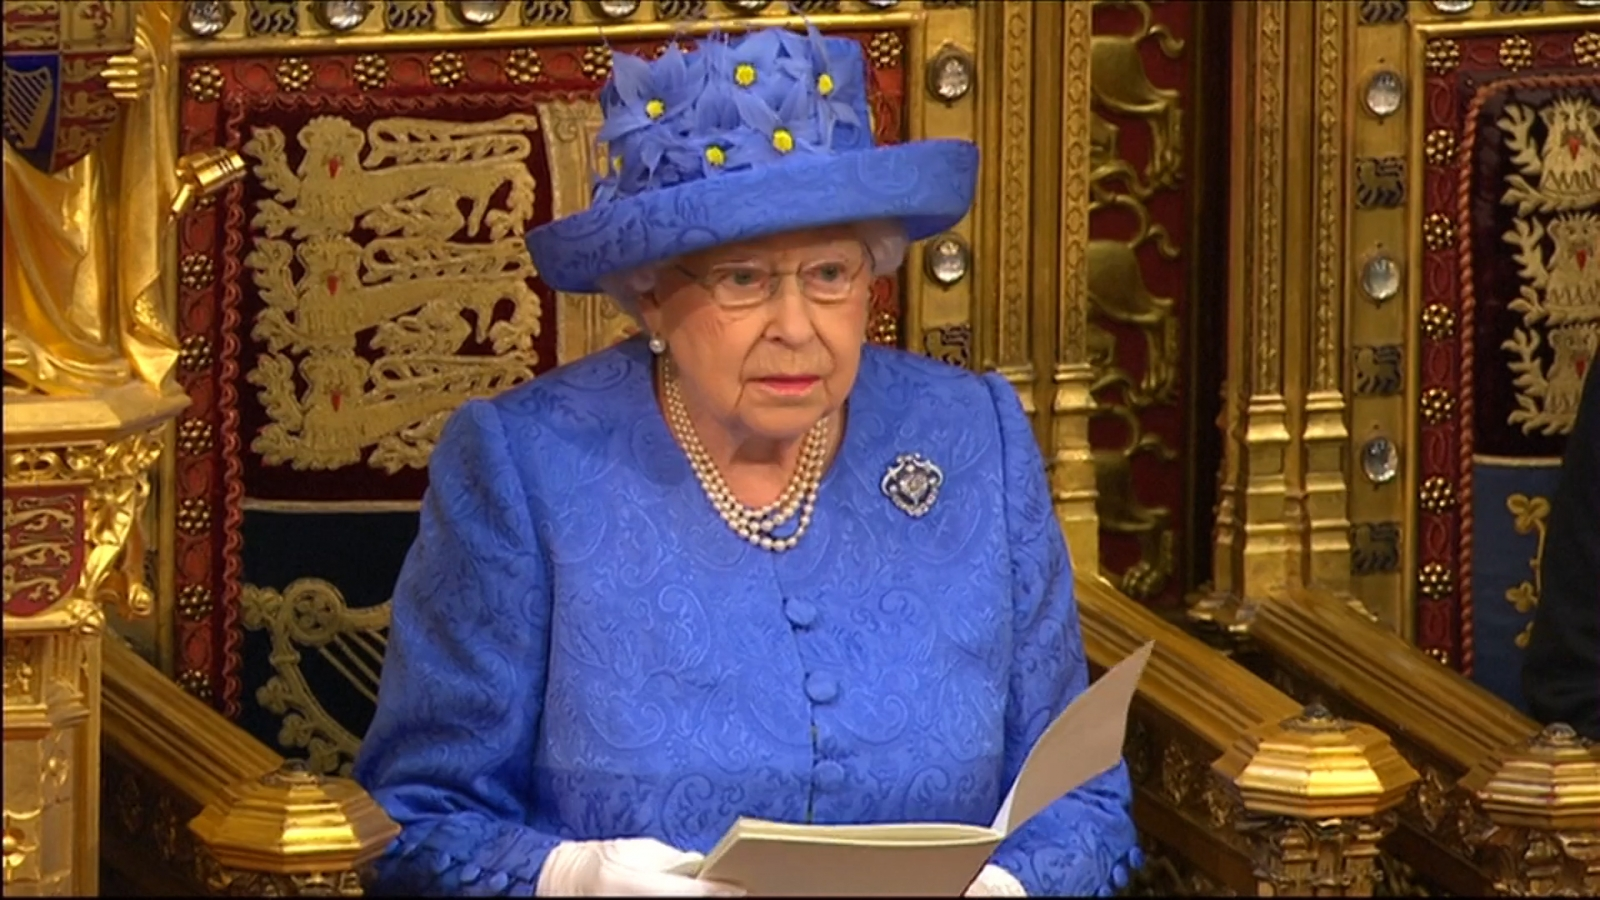 Queen Elizabeth says Brexit deal is government's top priority in speech to parliament